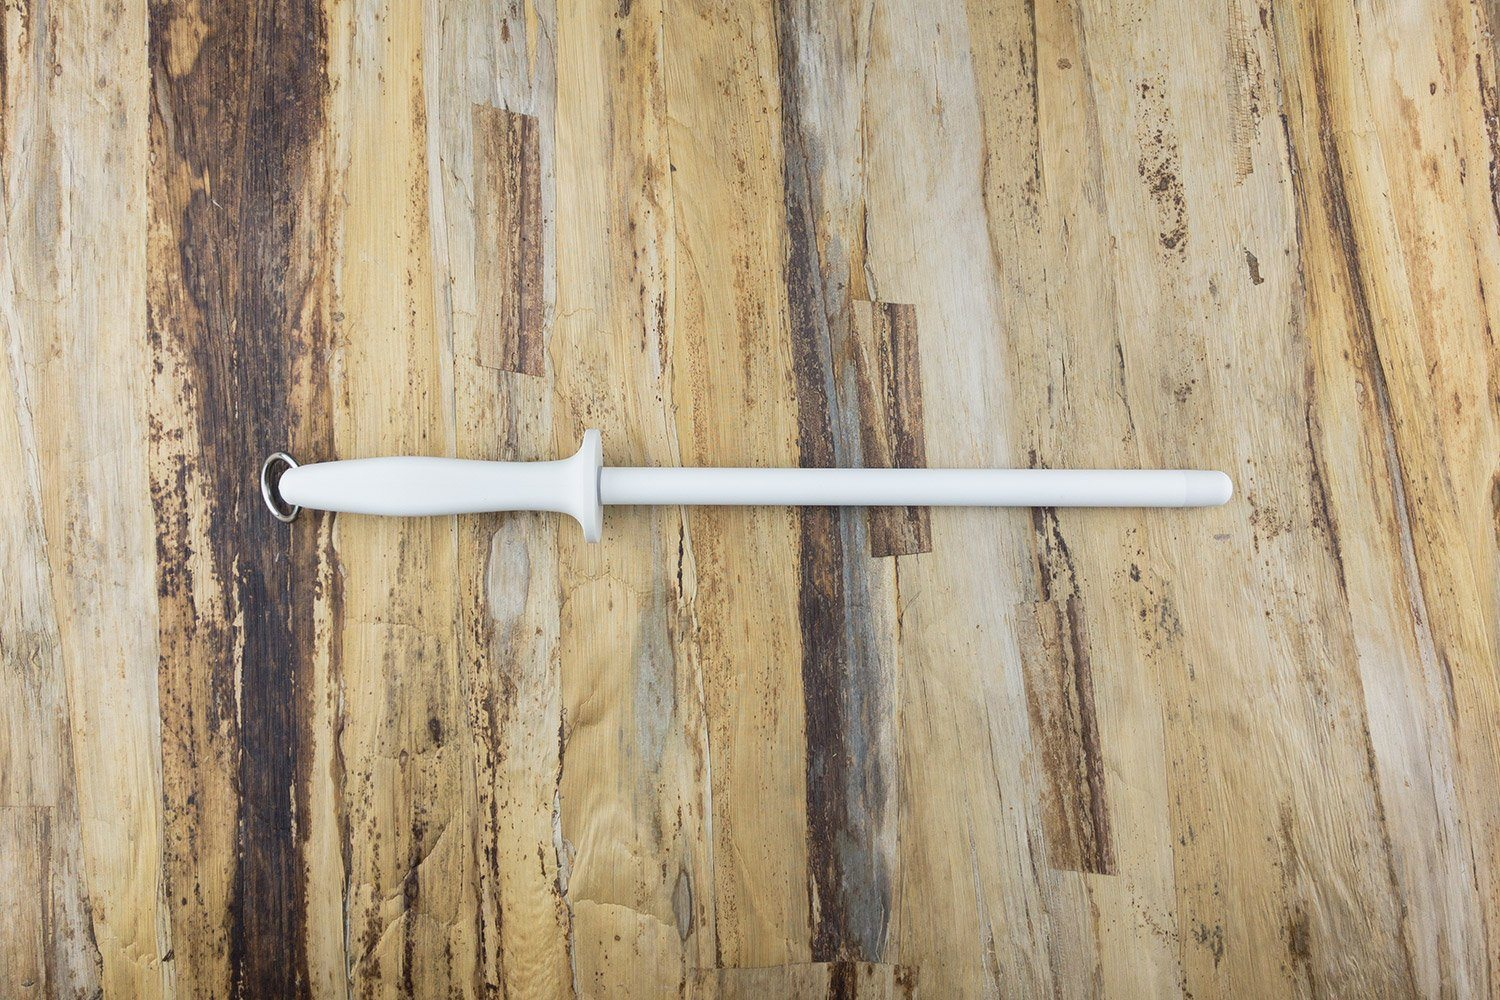 Knifewear White Ceramic Honing Rod